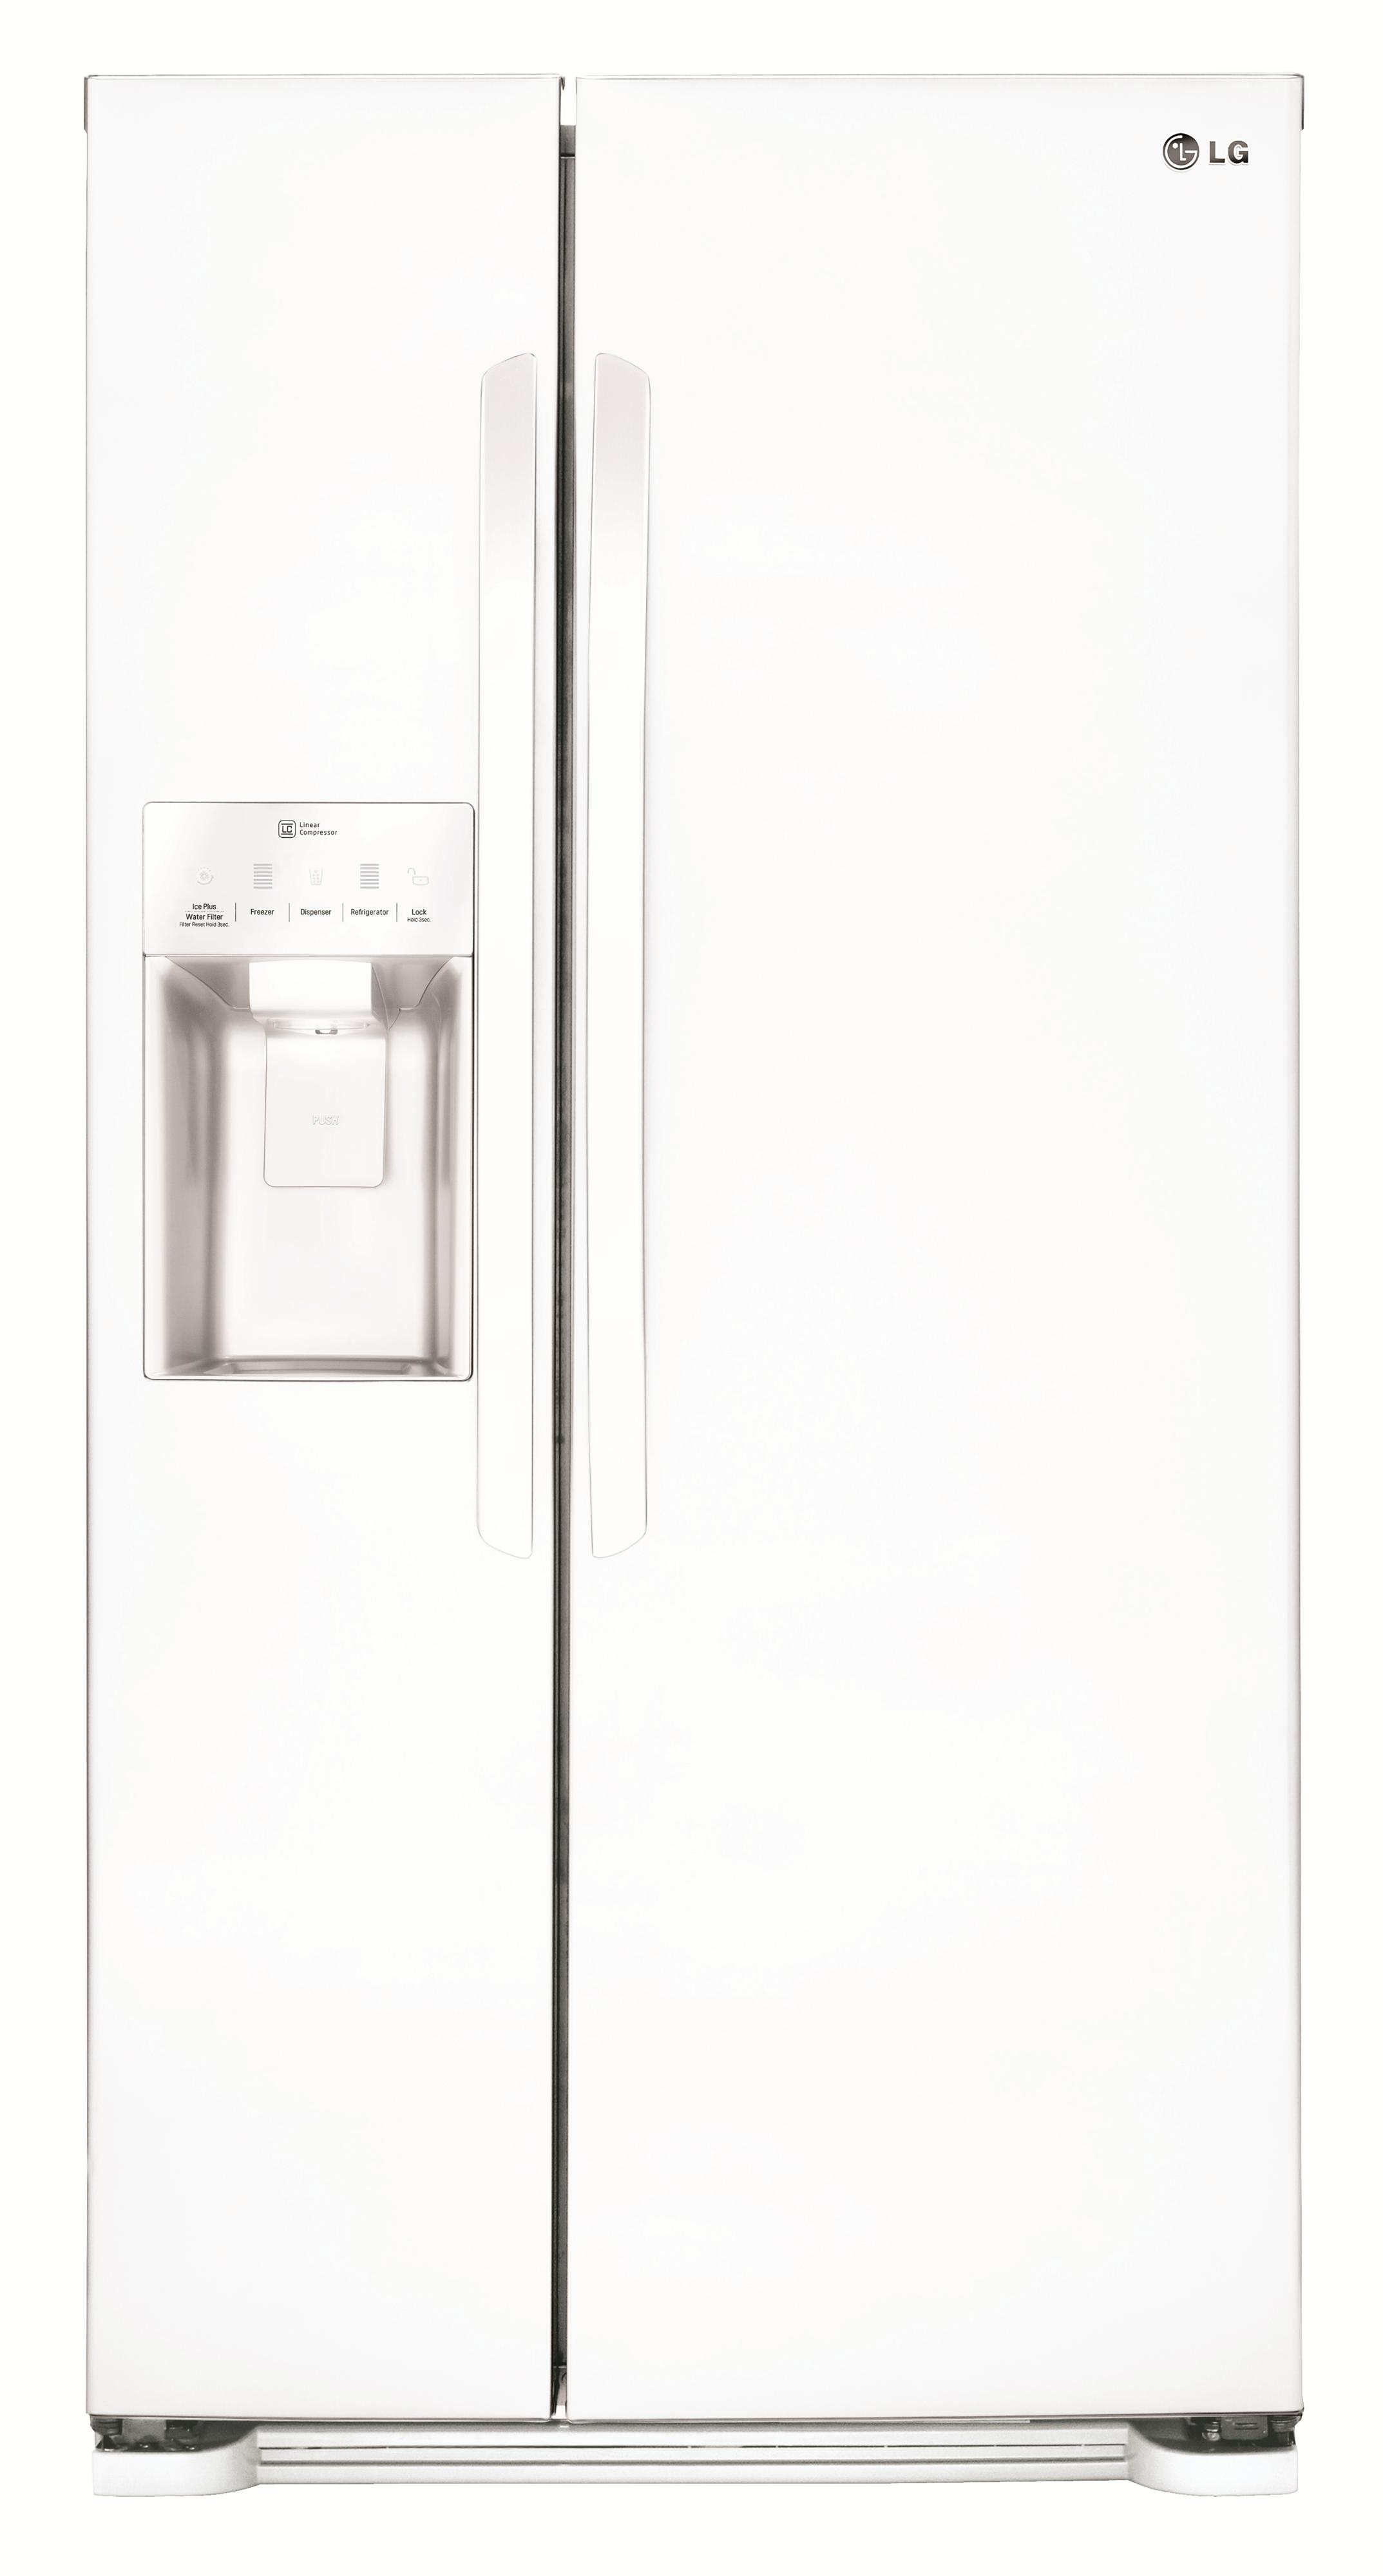 LG Appliances Side by Side Refrigerators 22 cu. ft. Side by Side Refrigerator - Item Number: LSXS22423W